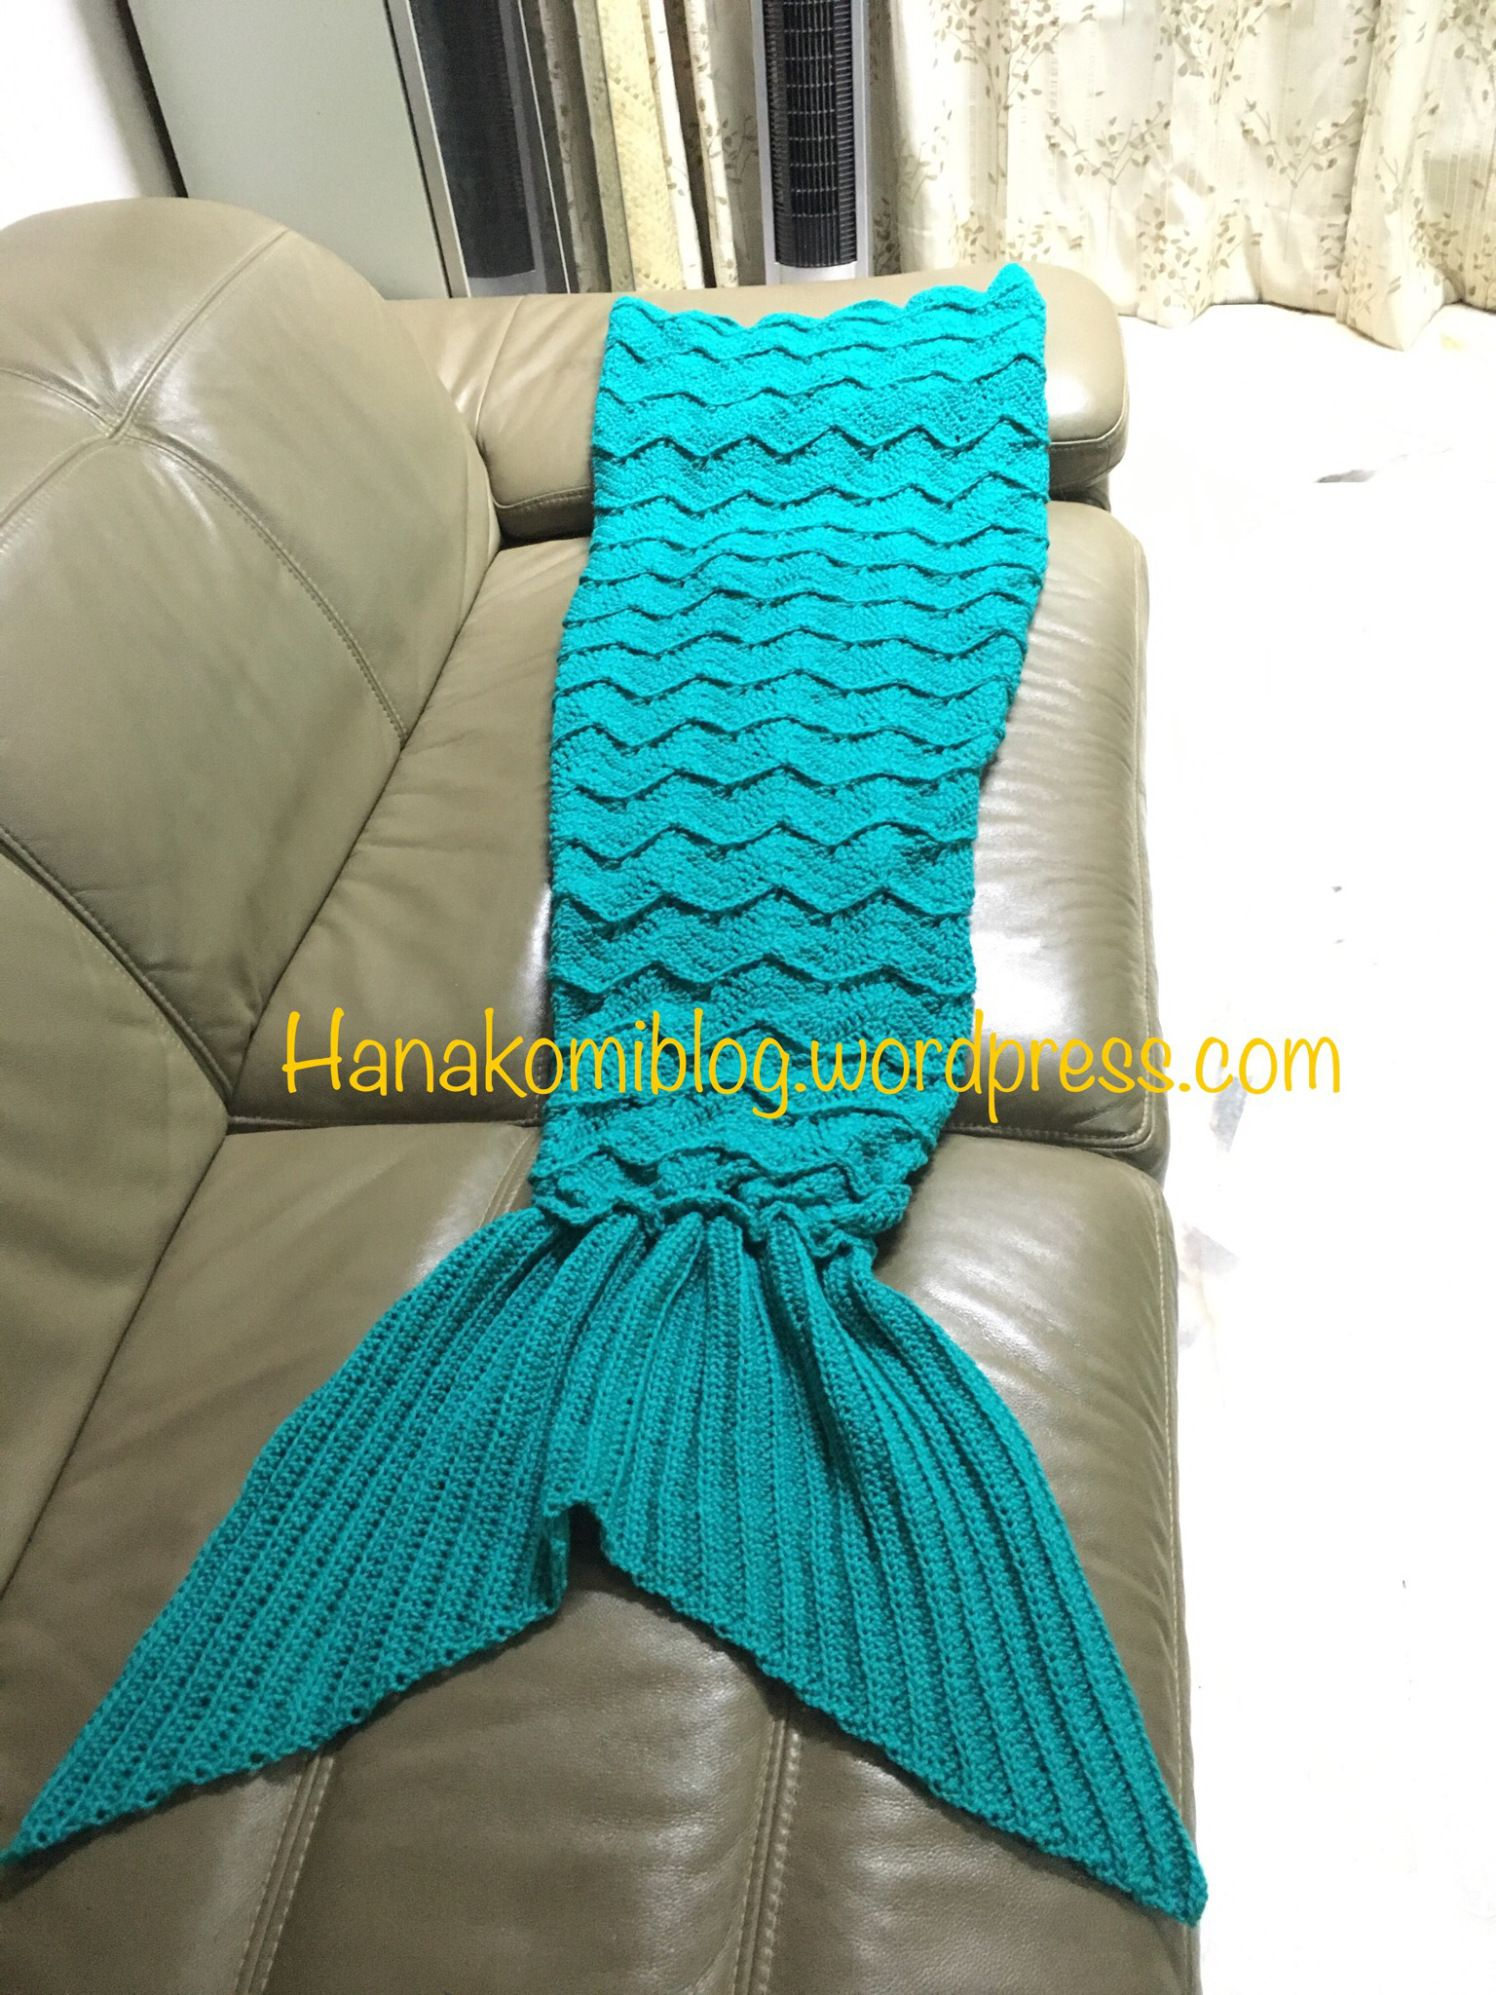 The Syira Aka Chevron Mermaid Tail Blanket Adult Free Crochet